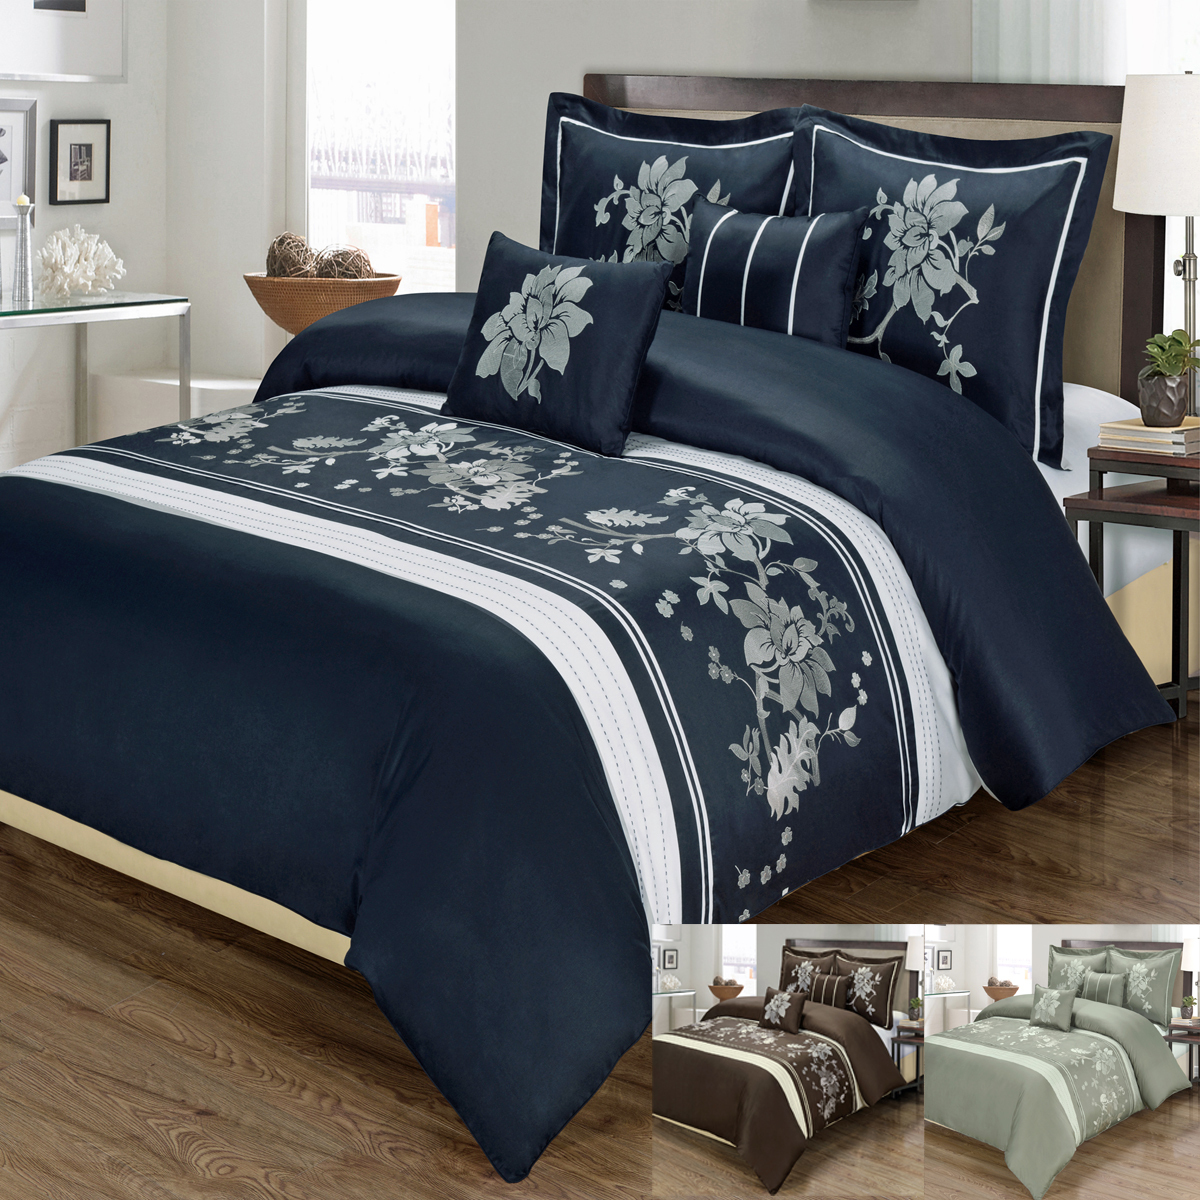 Bedroom Bed Duvet Cover Set 100/% Combed Cotton 300TC Button Closure By Footer